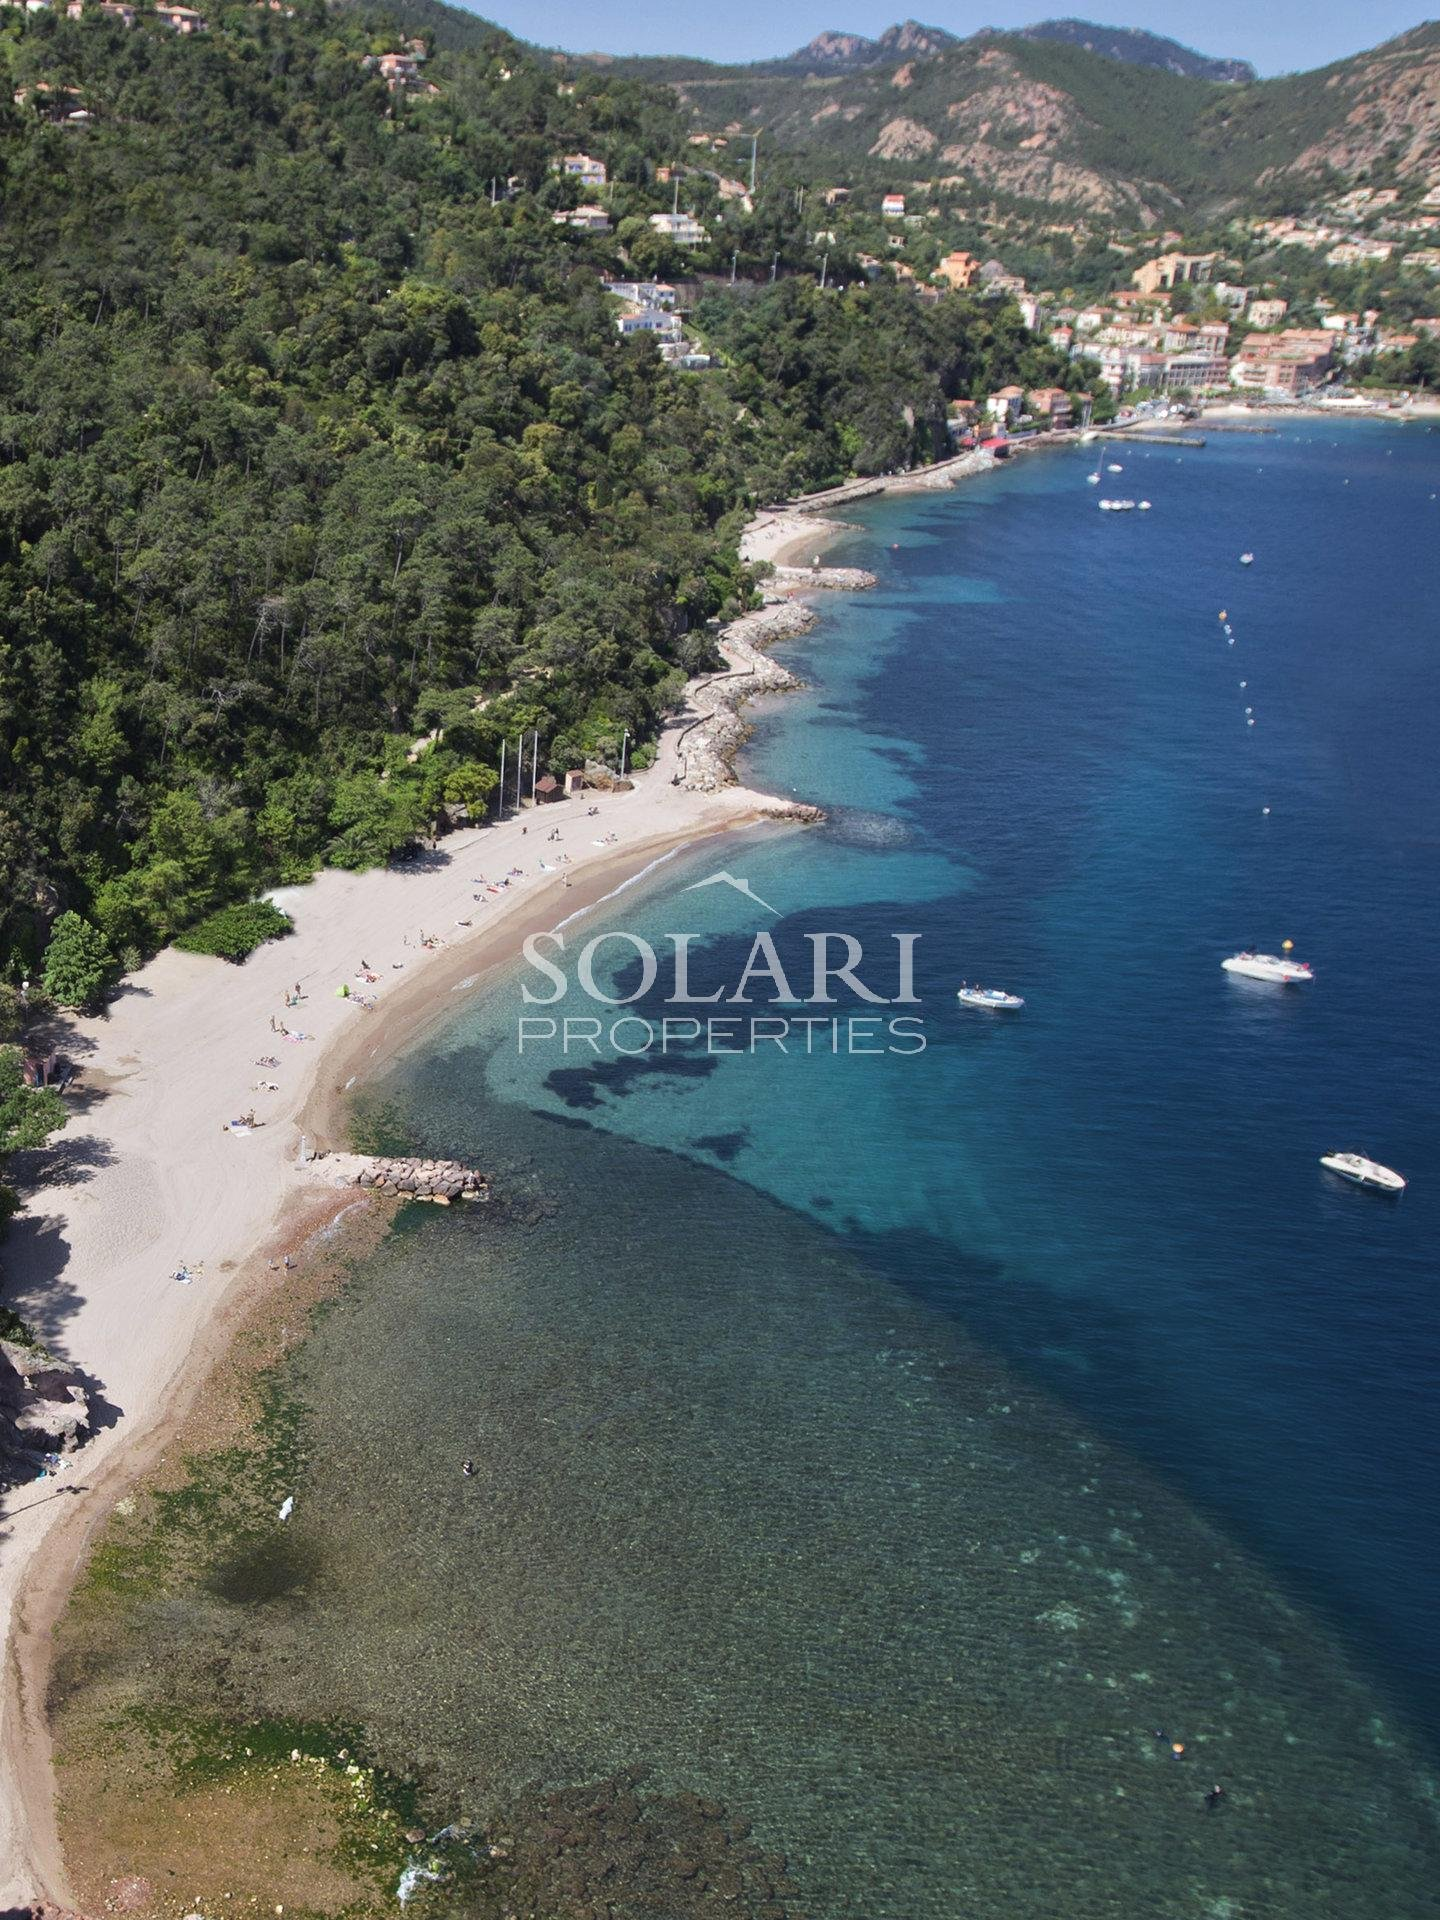 Villa with direct access to Theoule's beaches